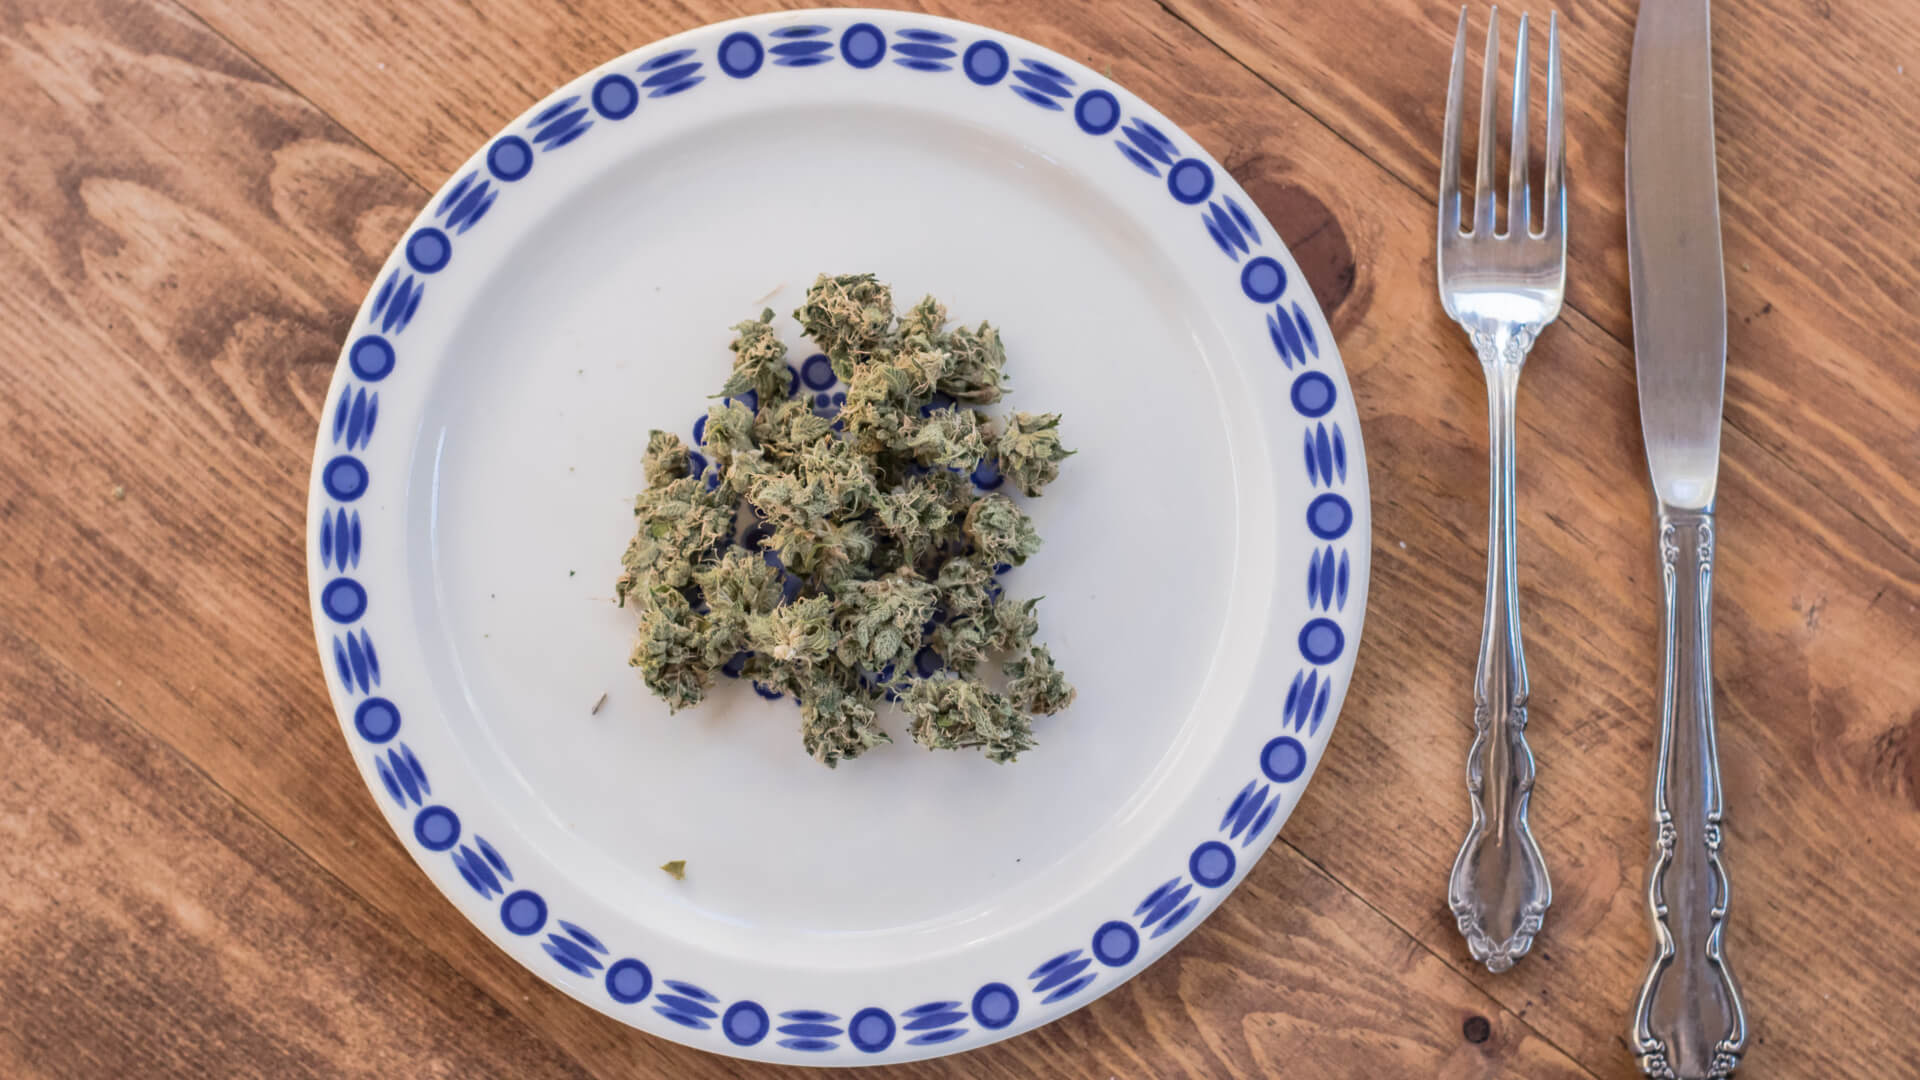 cannabis buds on a plate next to a fork and knife